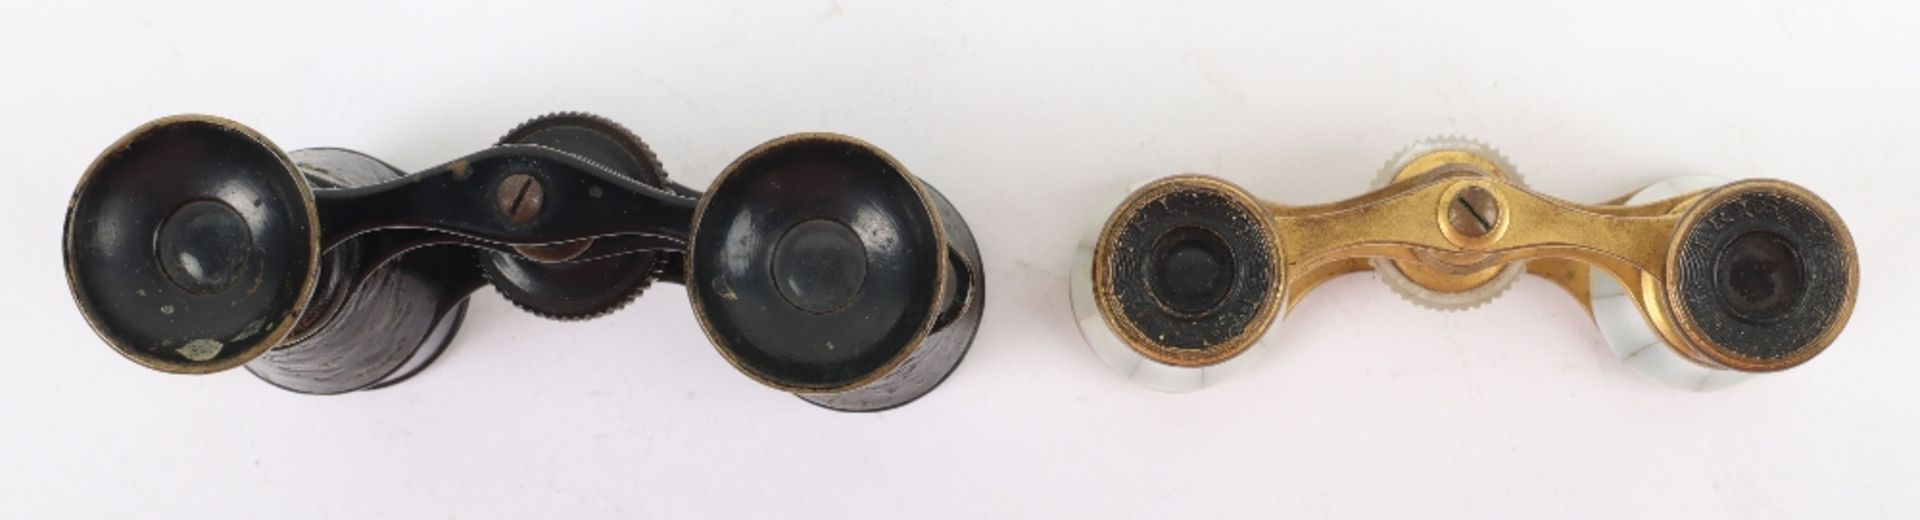 Two pairs of opera glasses - Image 3 of 13